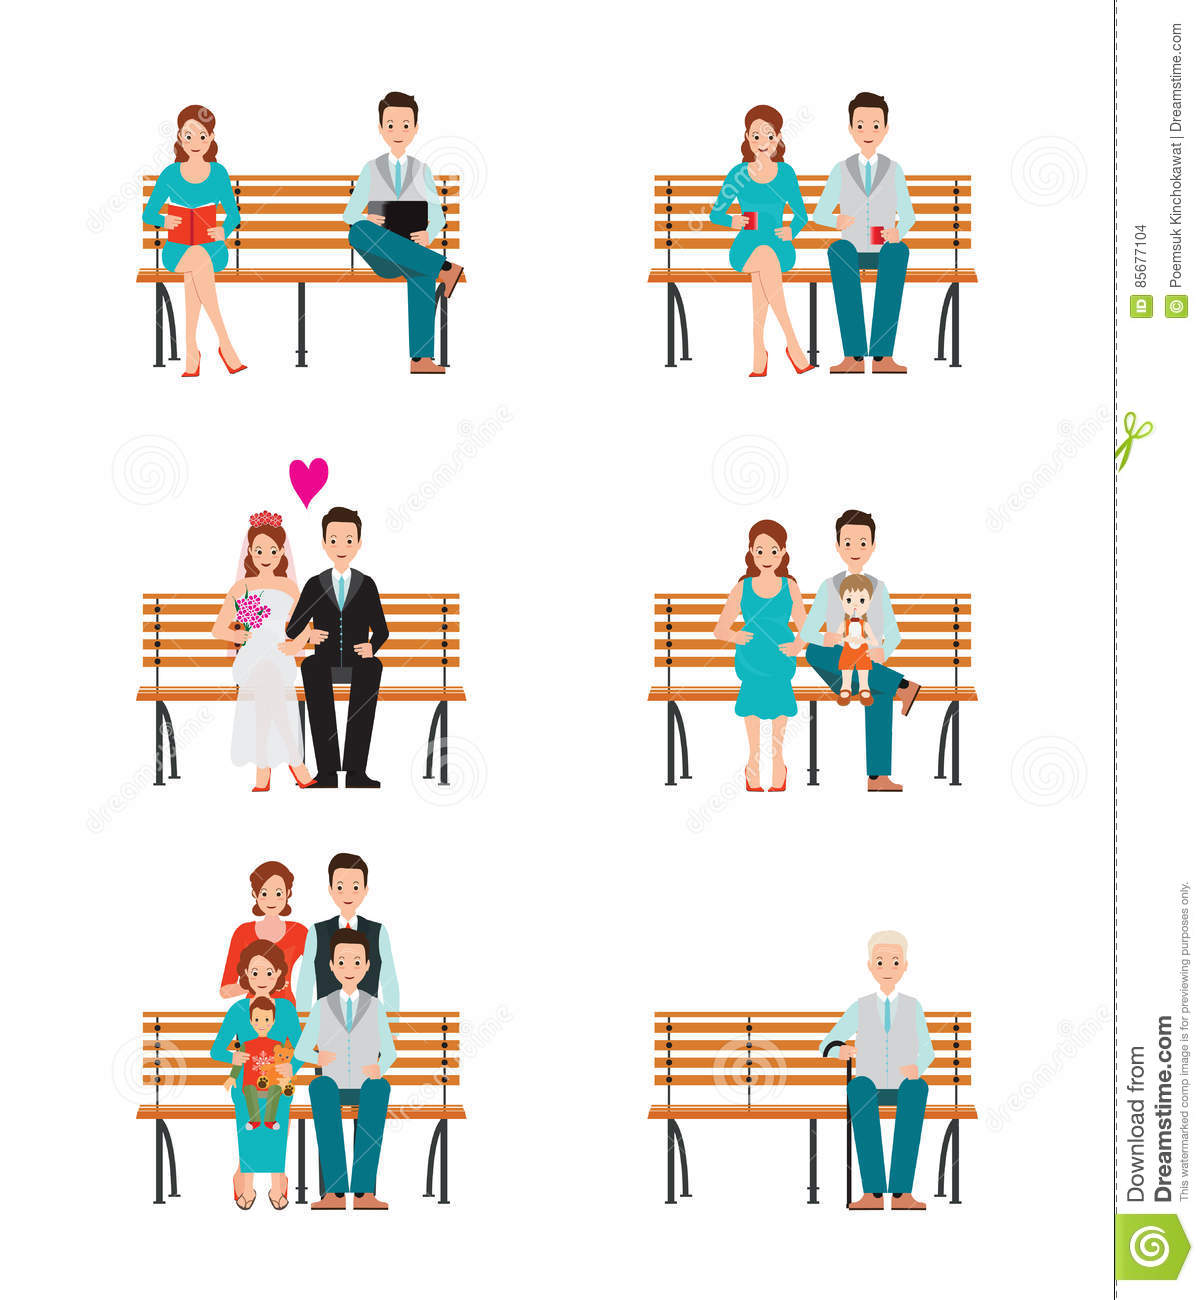 Family Generations Development Stages Process Over Time